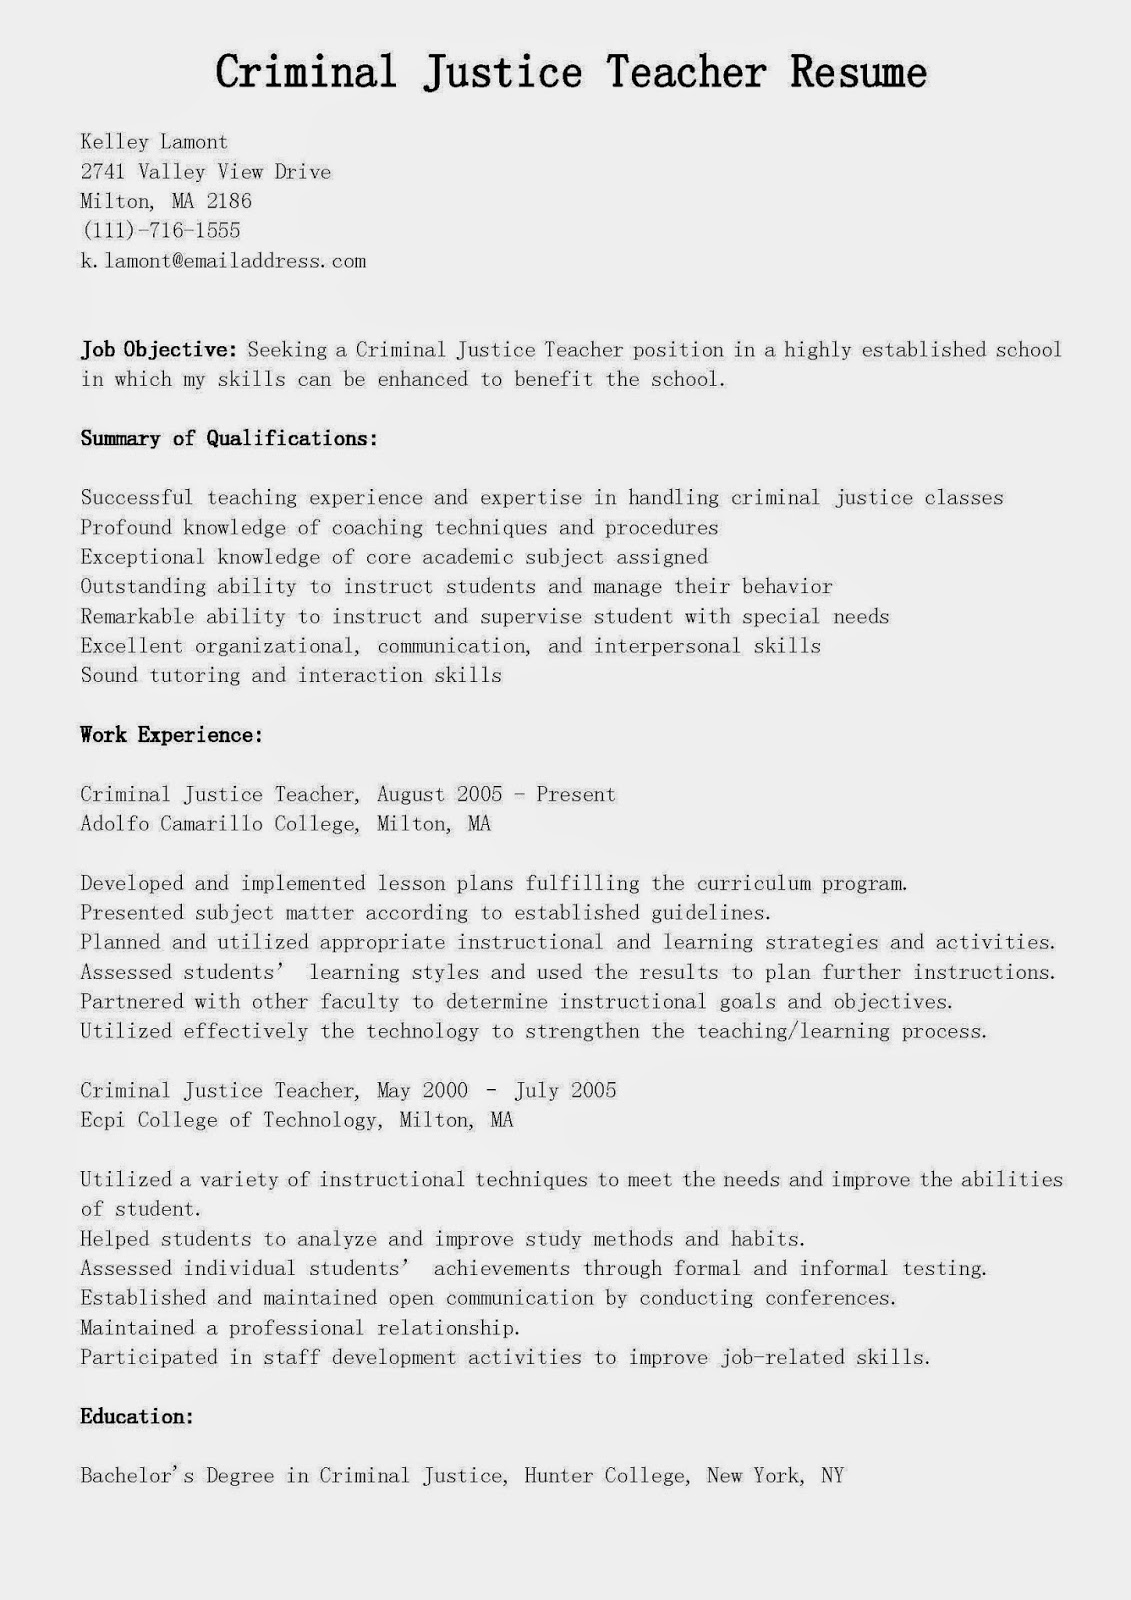 ui developer gui testing resume resume examples manual testing ui developer resume sample